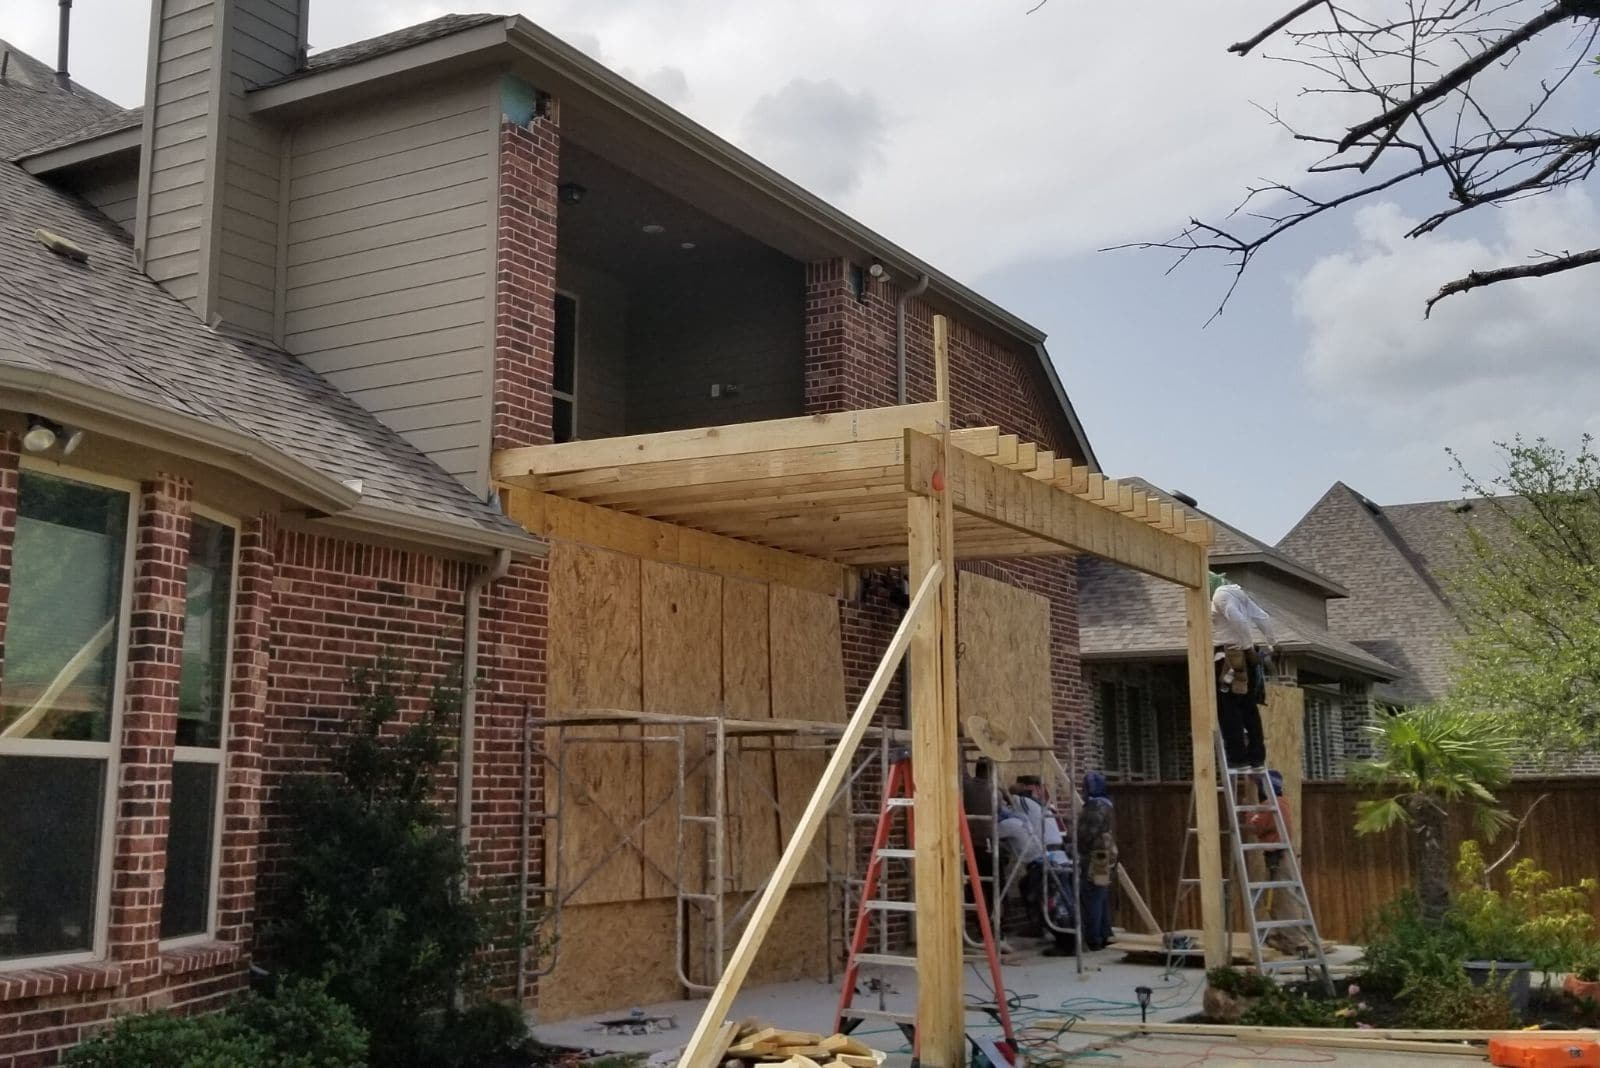 House Exterior Being Remodeled